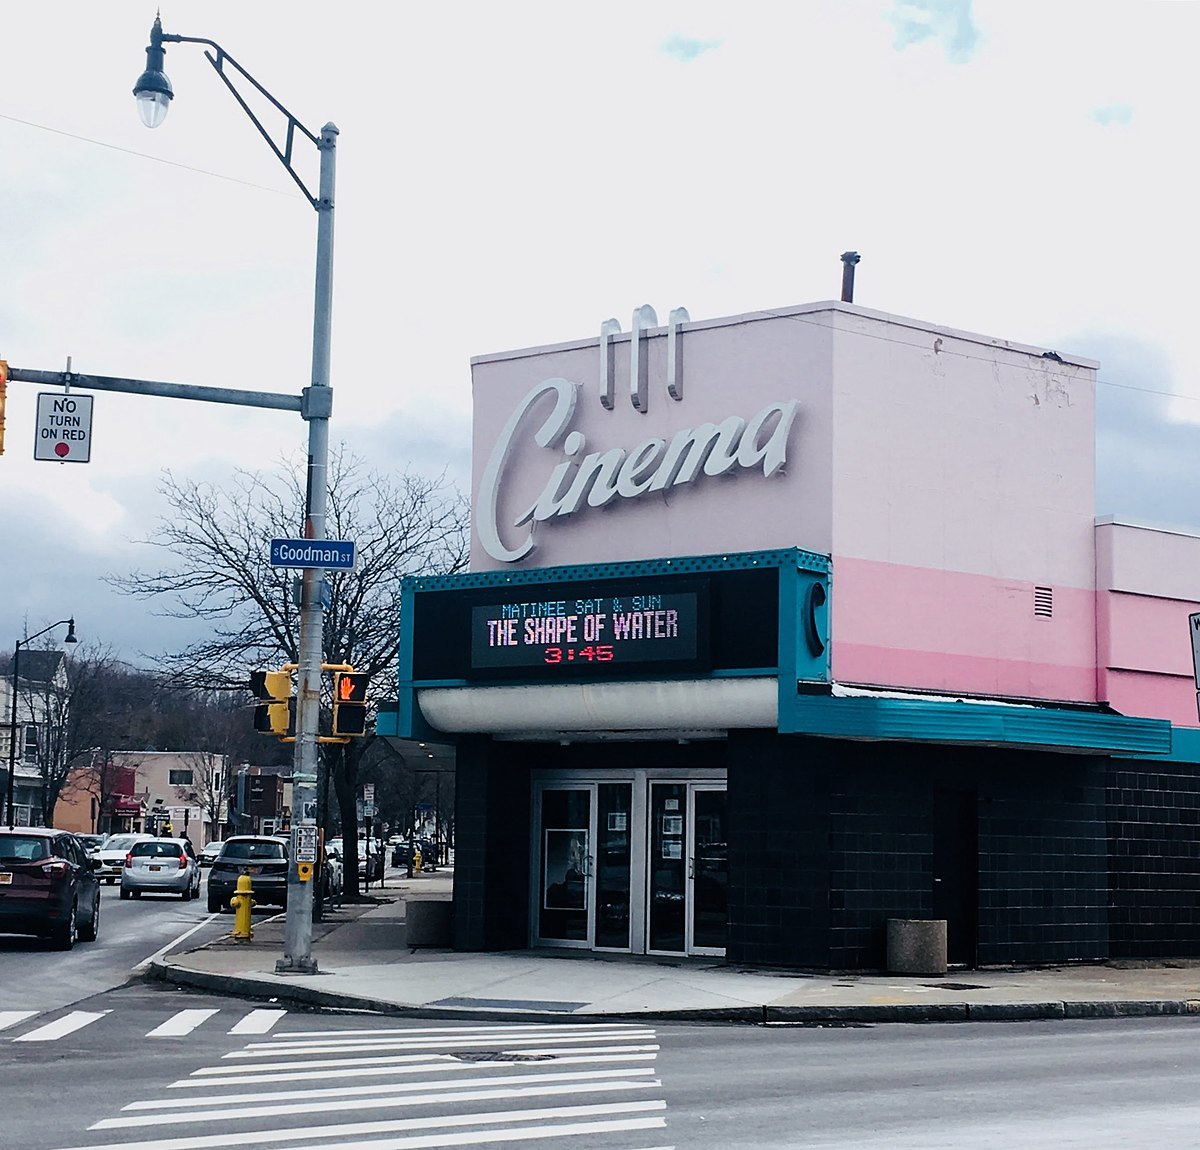 Rochester Ny Greece: Cinema Theater (Rochester, New York)